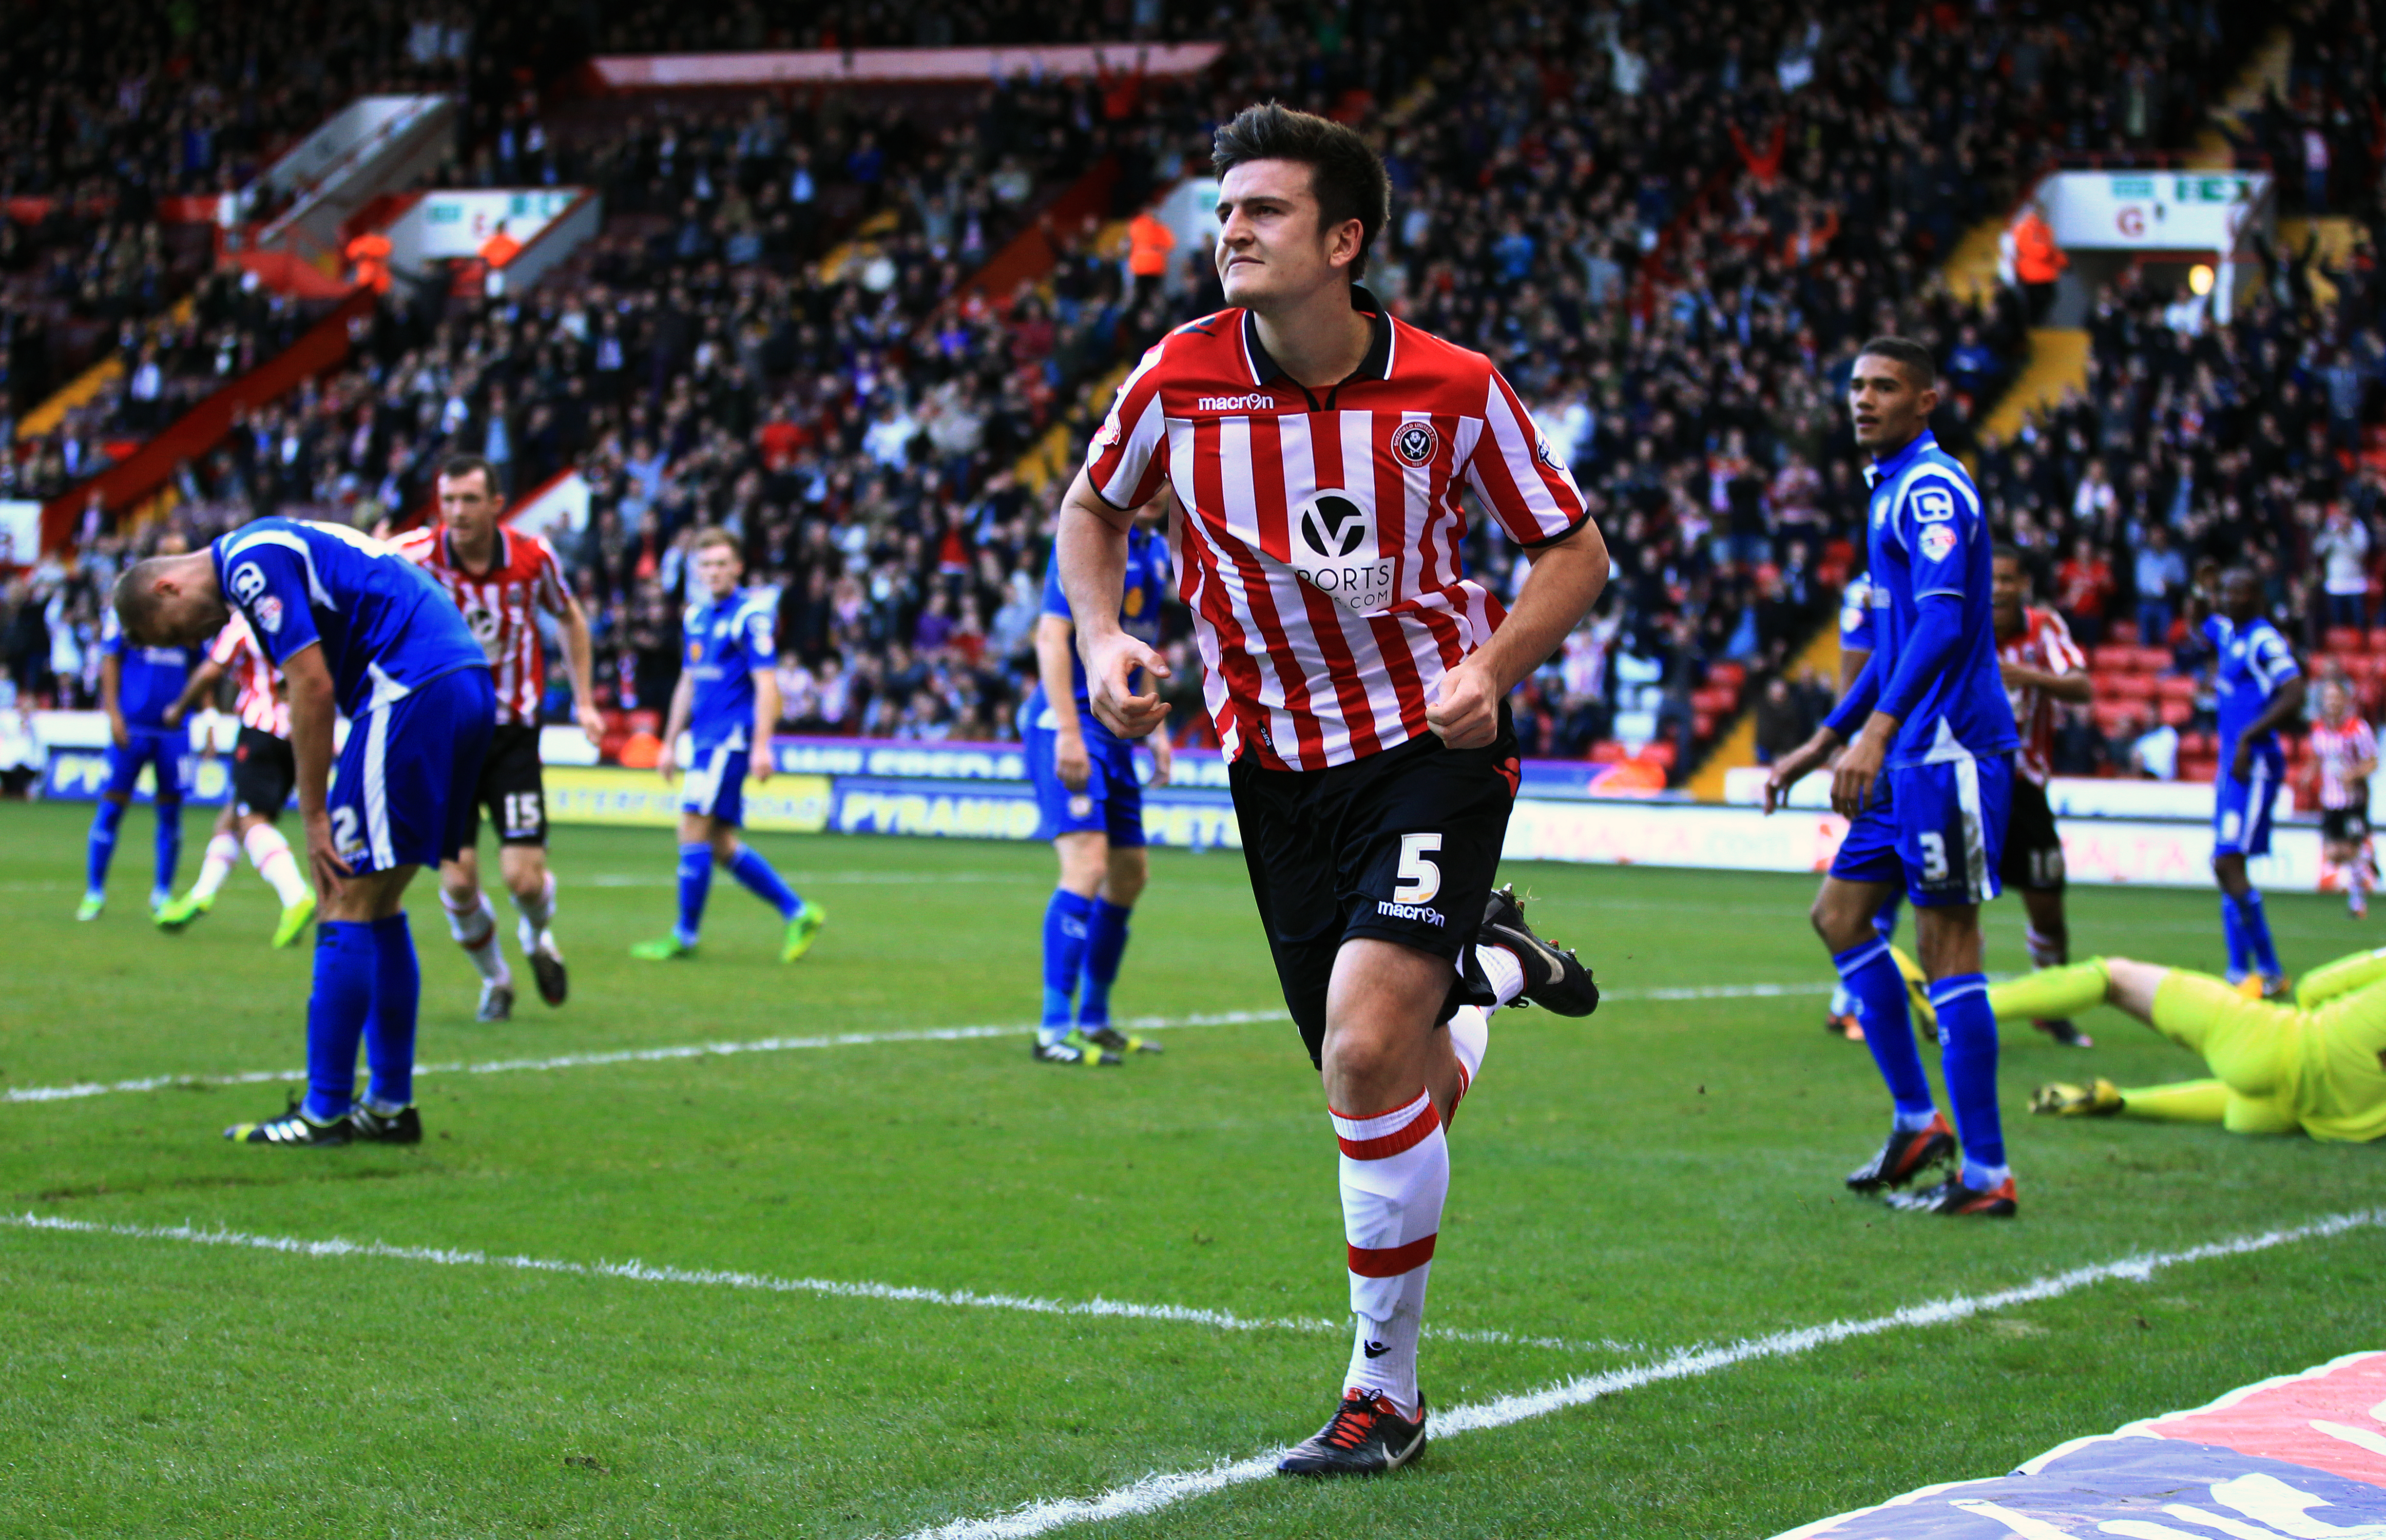 David Moyes revealed Manchester United were concerned about Harry Maguire's size when they scouted him in 2013